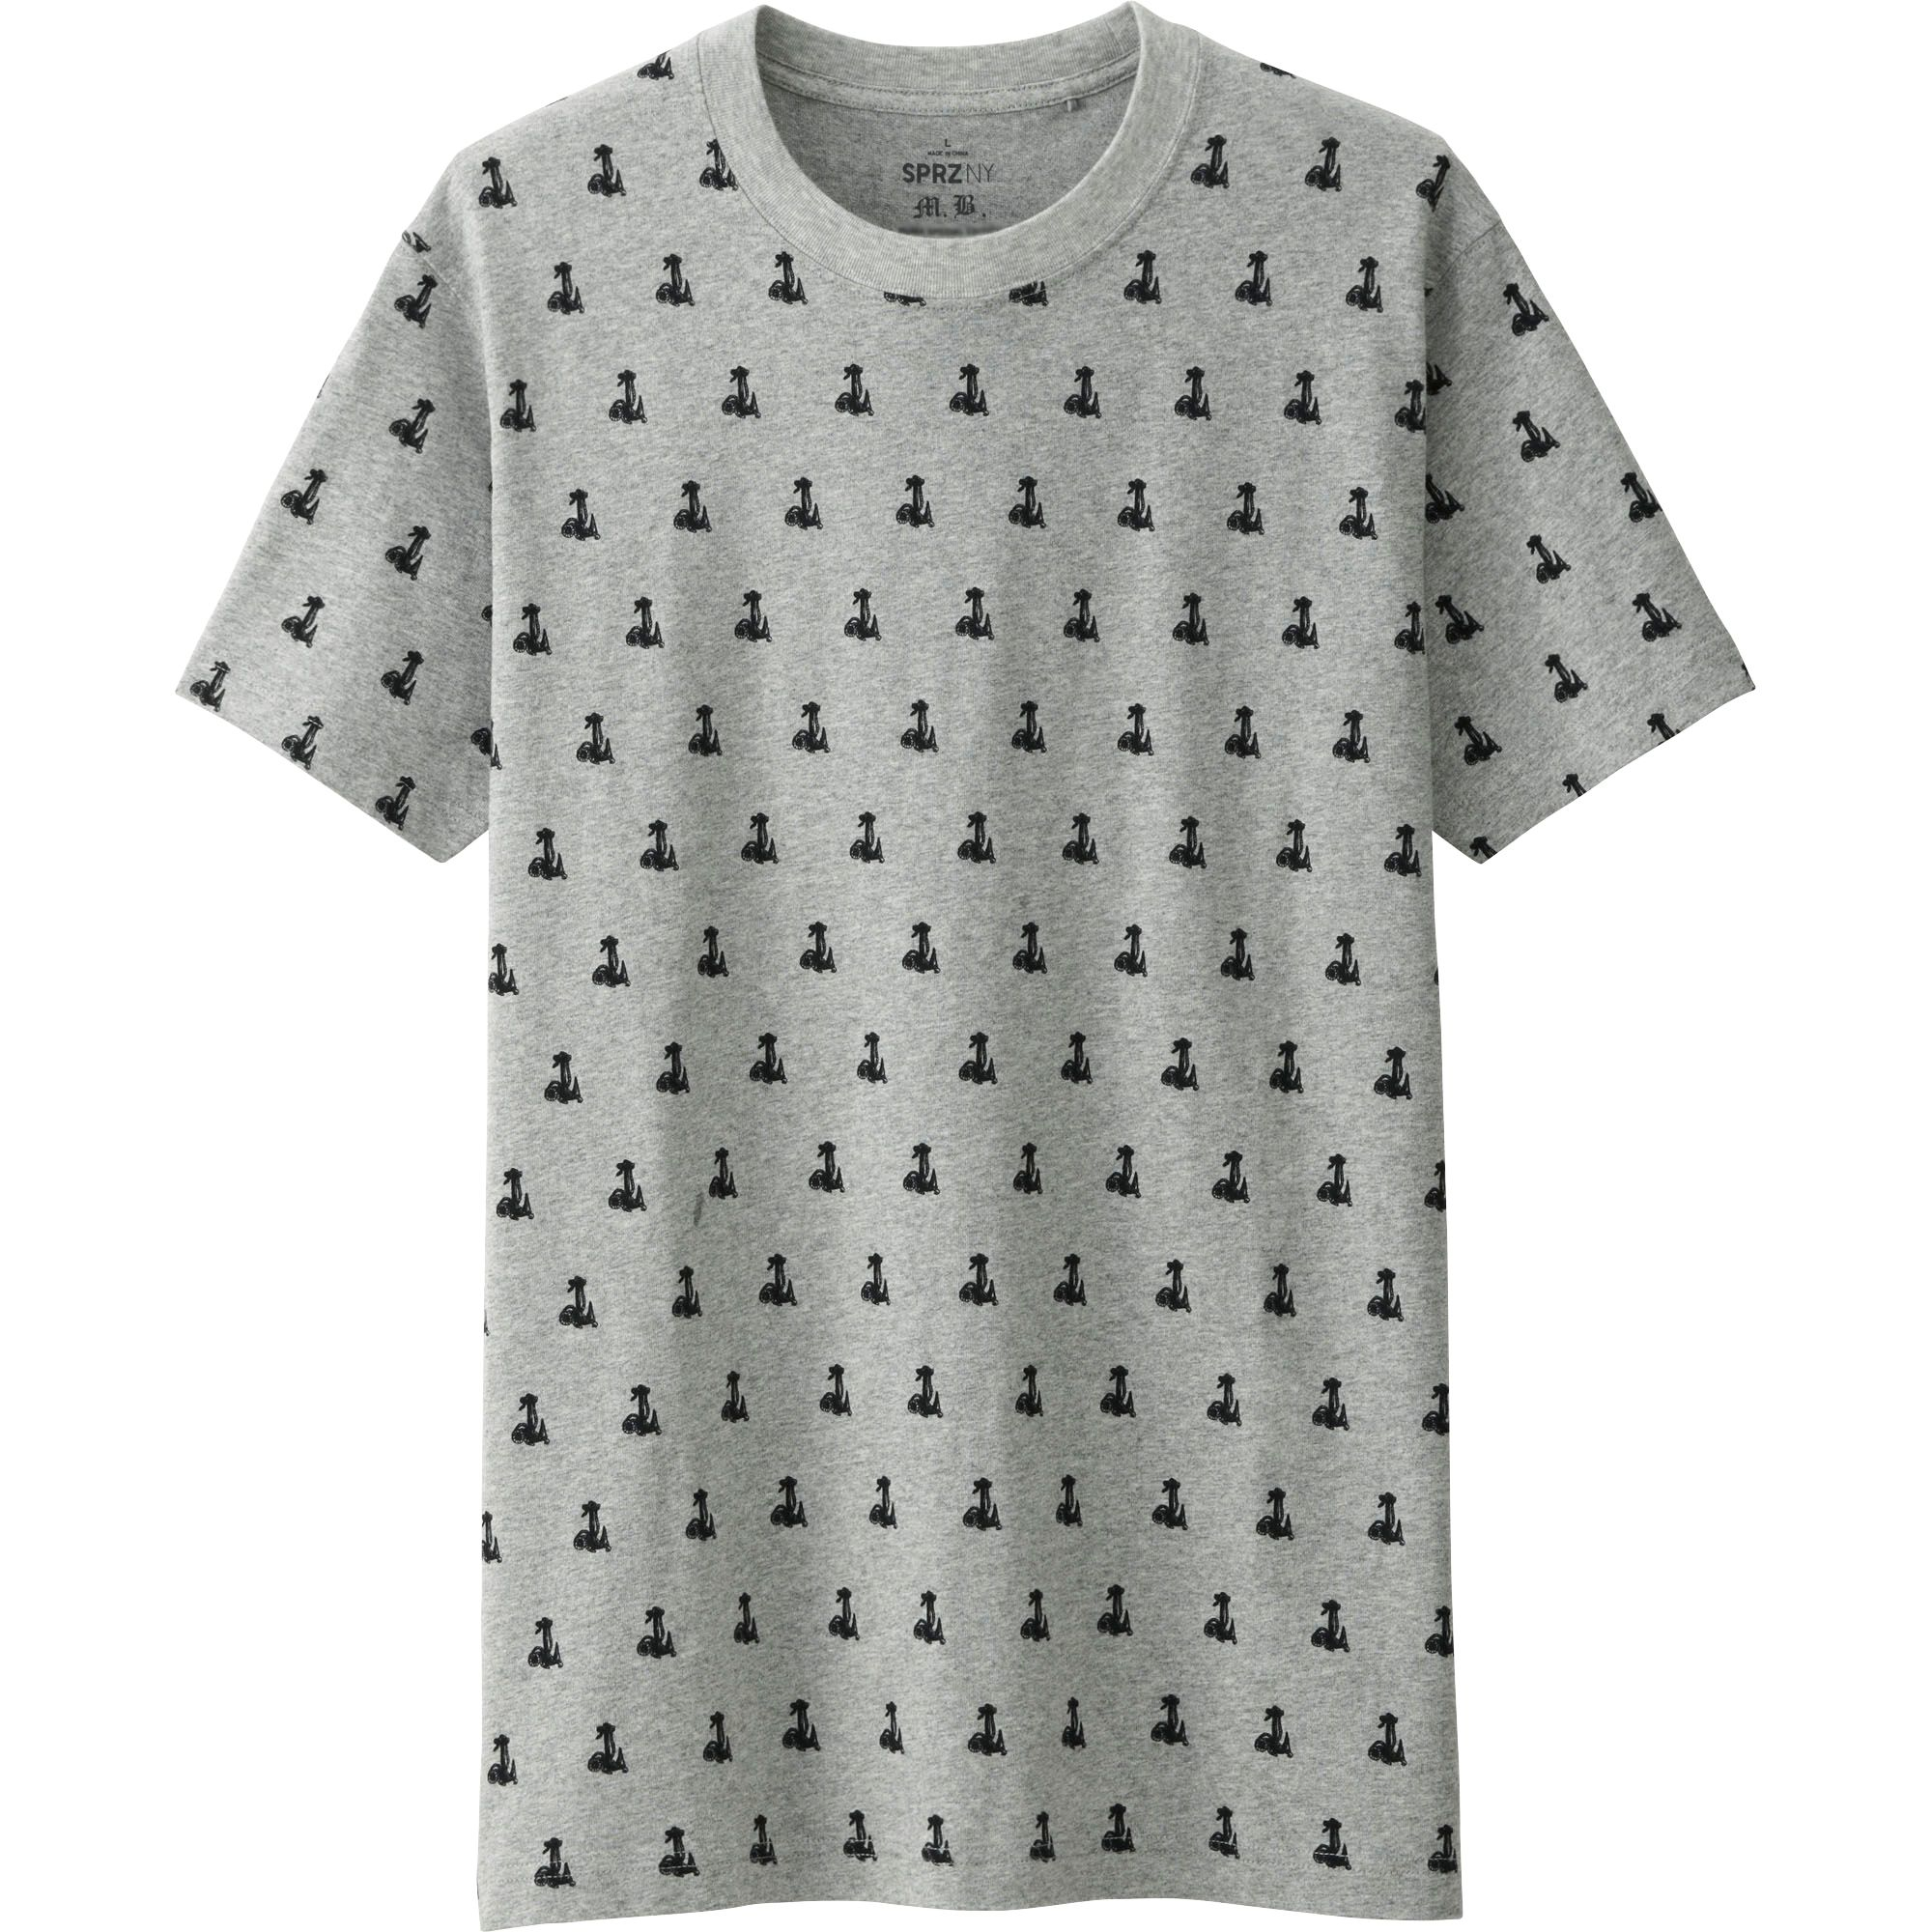 Uniqlo men sprz ny graphic t shirt marcel broodthaers in for Uniqlo moma t shirt